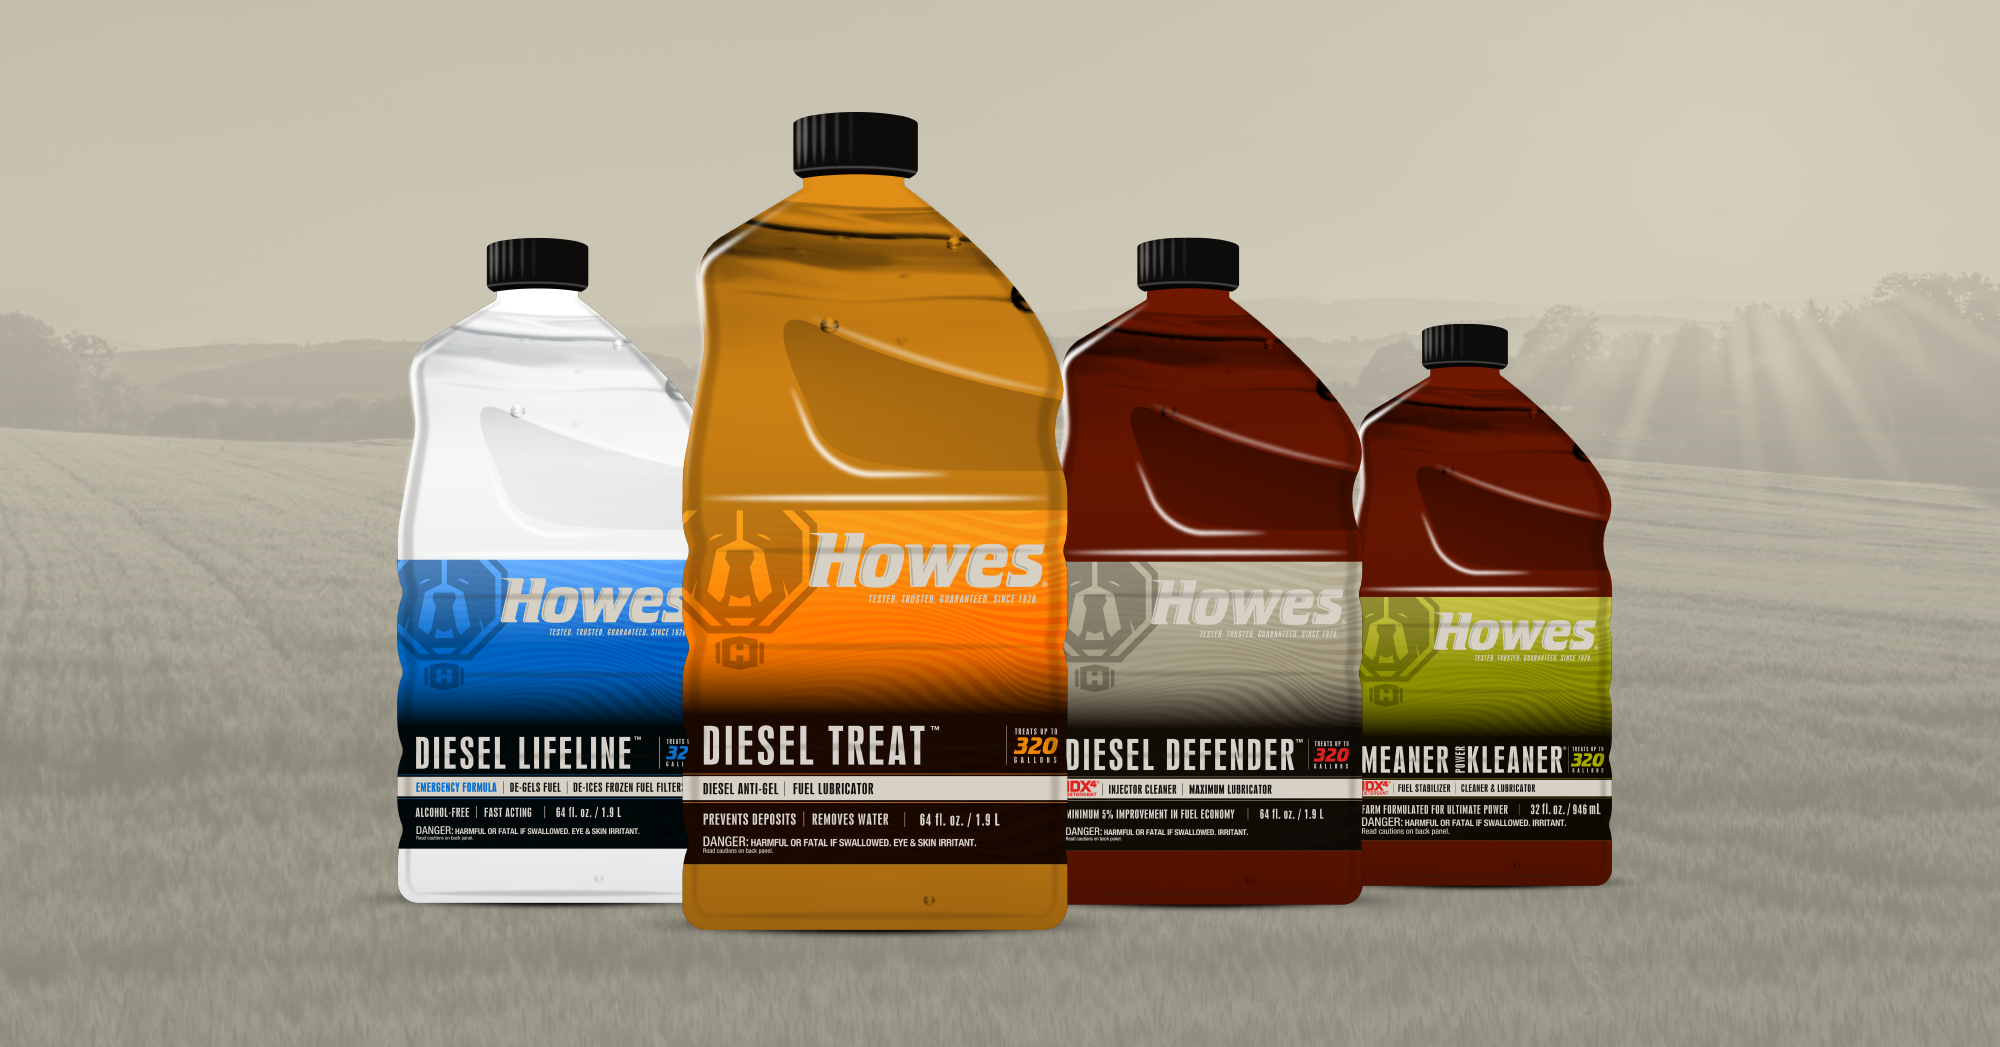 Howes_CaseStudy_images-07.png